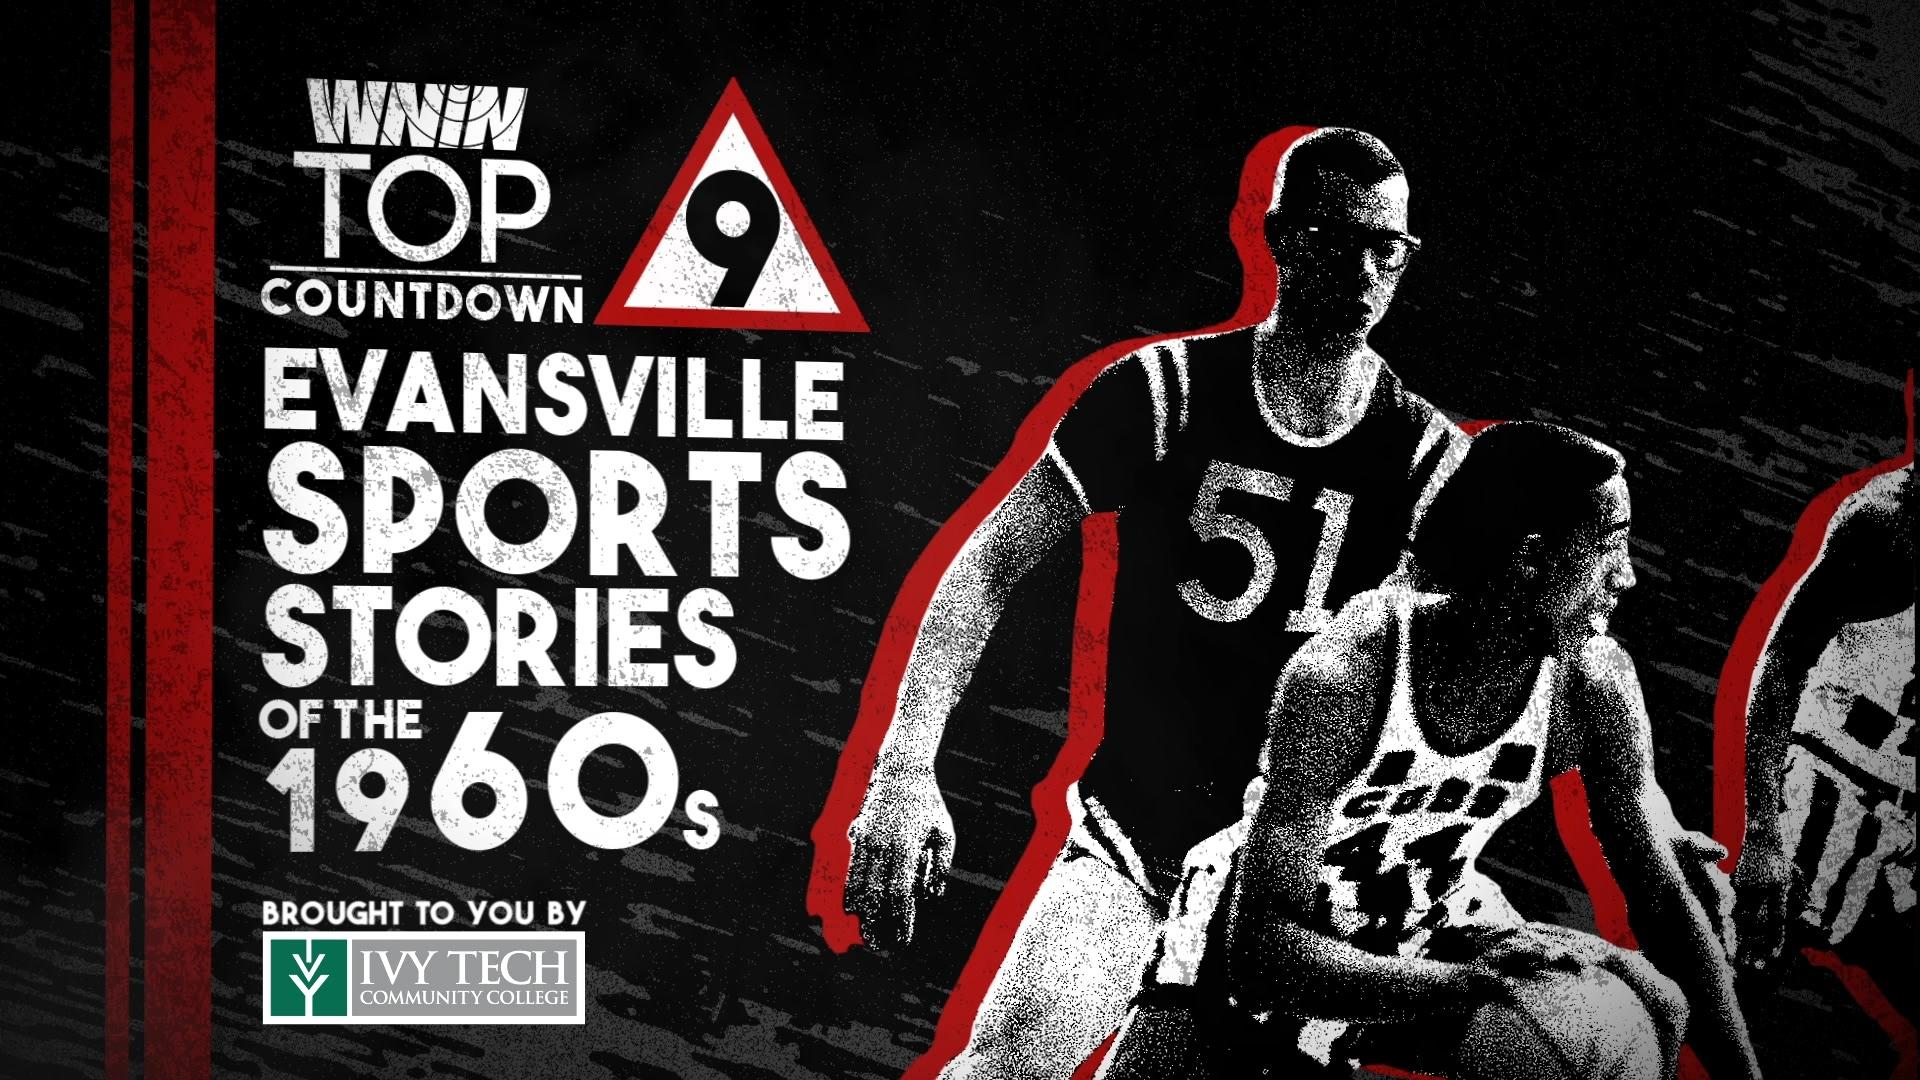 WNIN's Top 9 Evansville Sports Stories of the 1960's